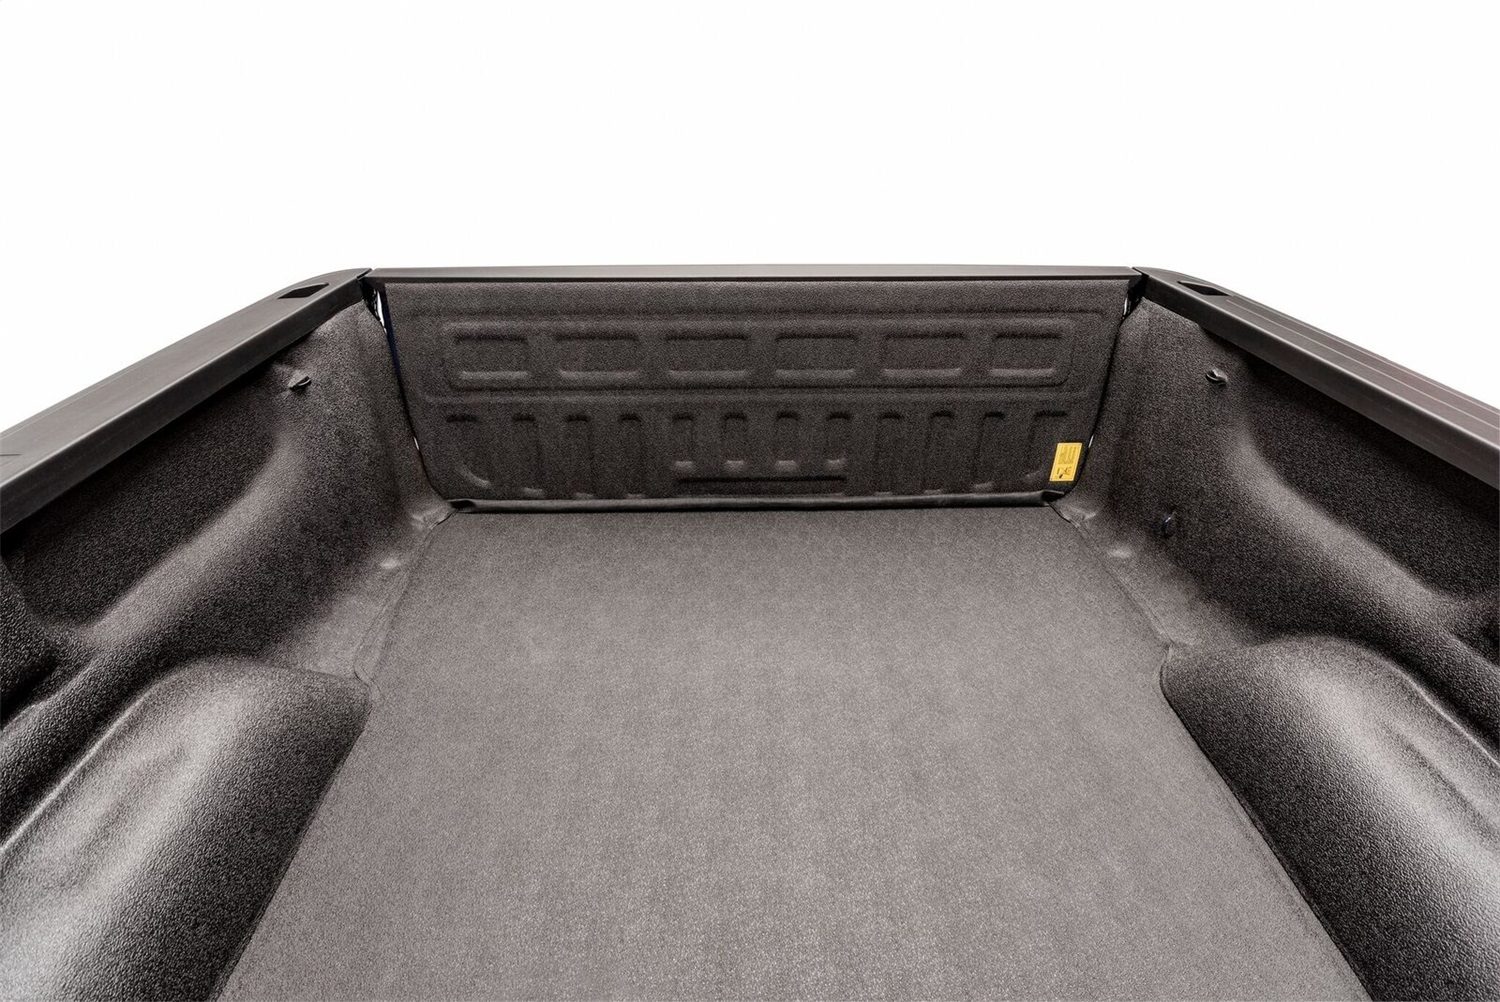 Bed Rug Bedrug Bedtred Ultra Truck Bed Liner